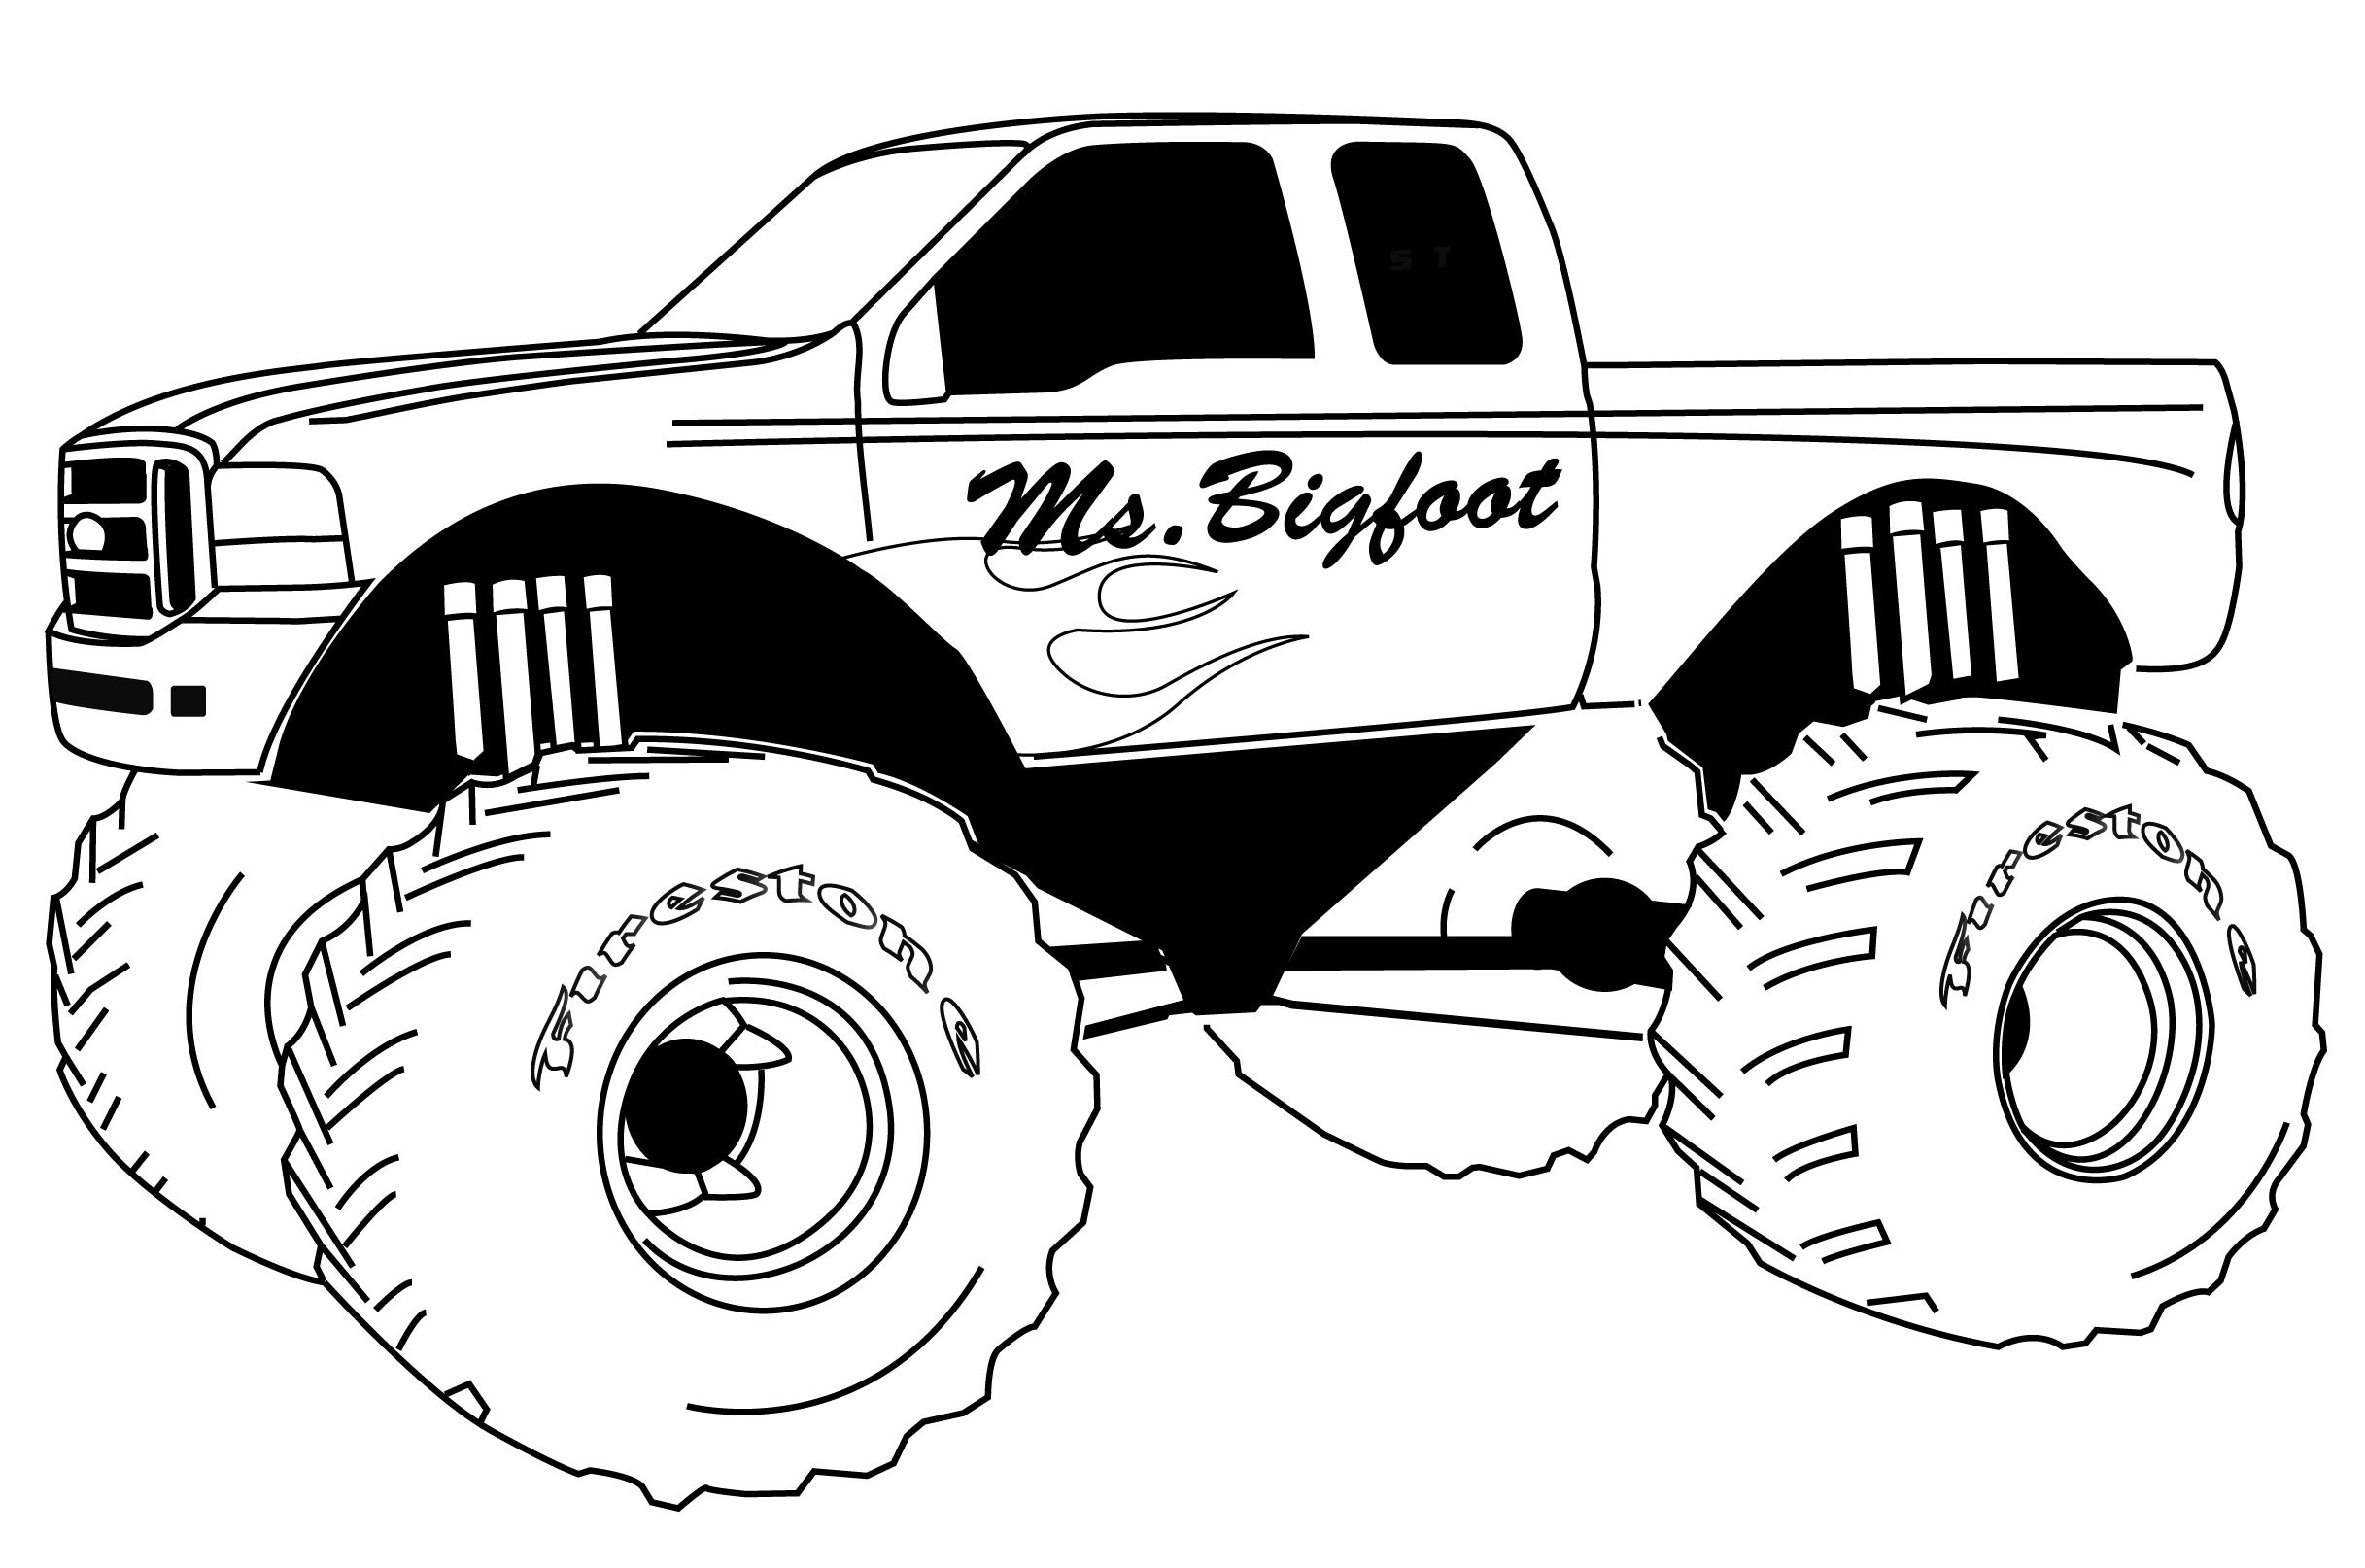 monster truck coloring pages easy easy coloring pages monster trucks free printable coloring monster easy pages coloring truck